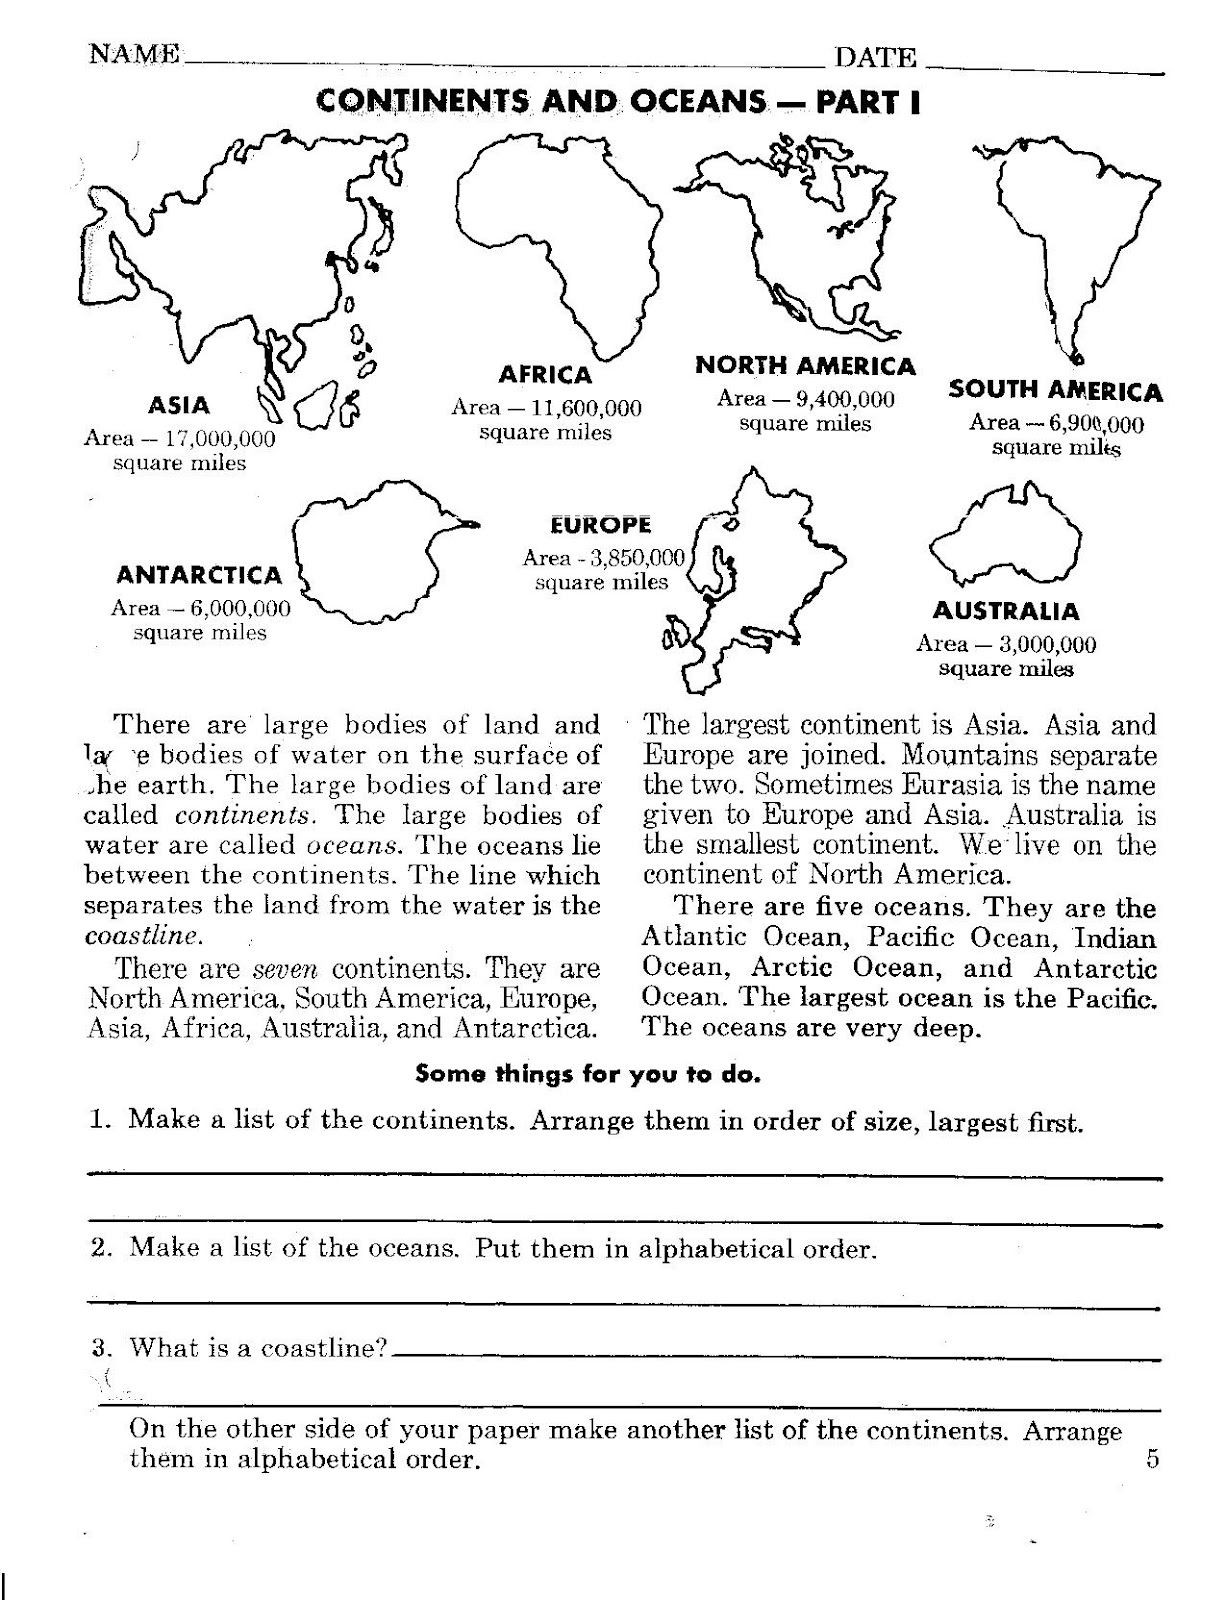 Ocean Worksheets for 2nd Grade Continents and Oceans Worksheets